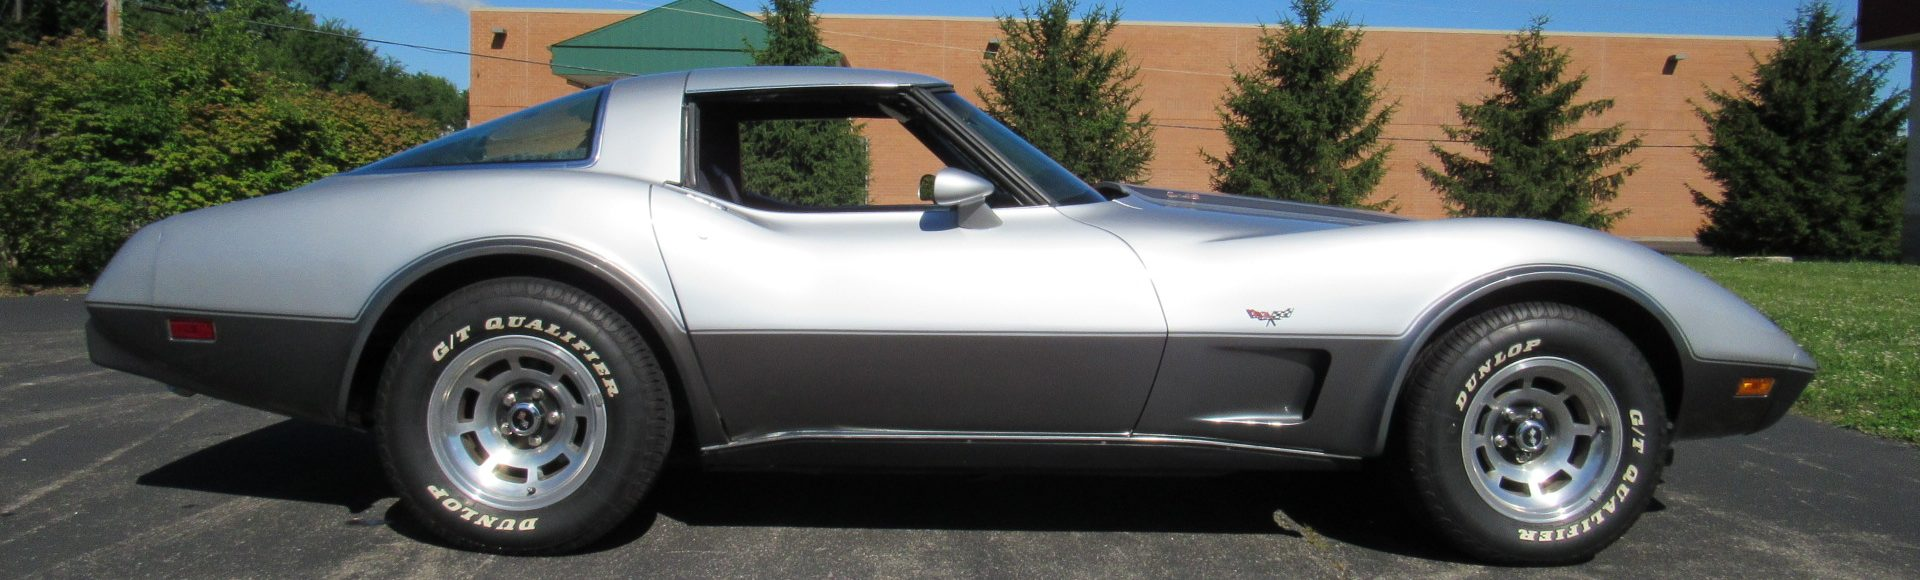 1978 Silver Anniversary Corvette, Blue Interior SOLD!